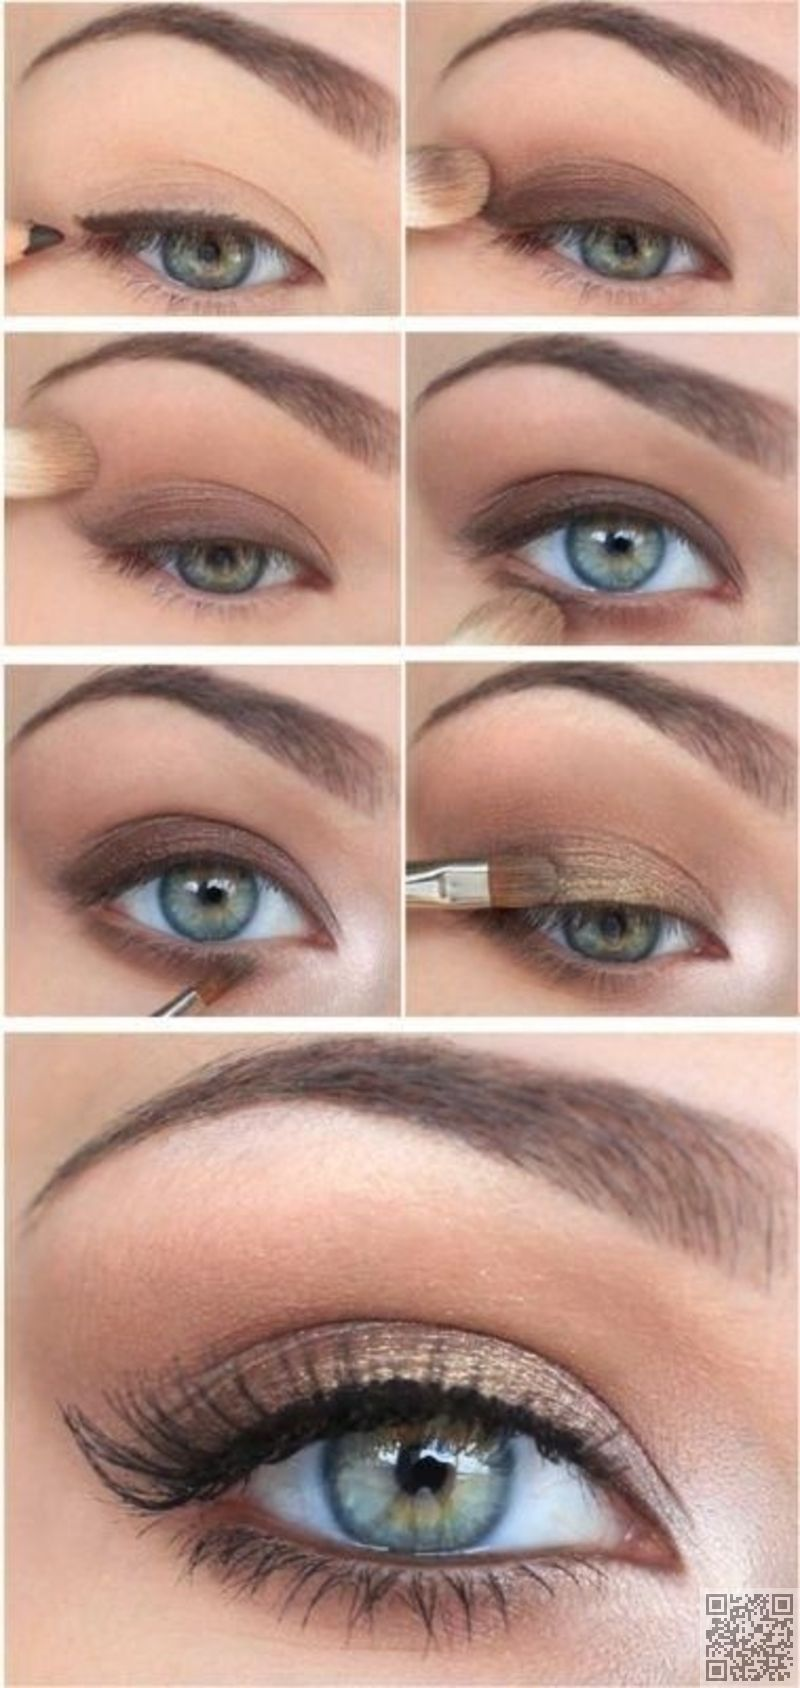 Pair up Neutral Tones to Highlight Your Lashes and Make Your Eyes